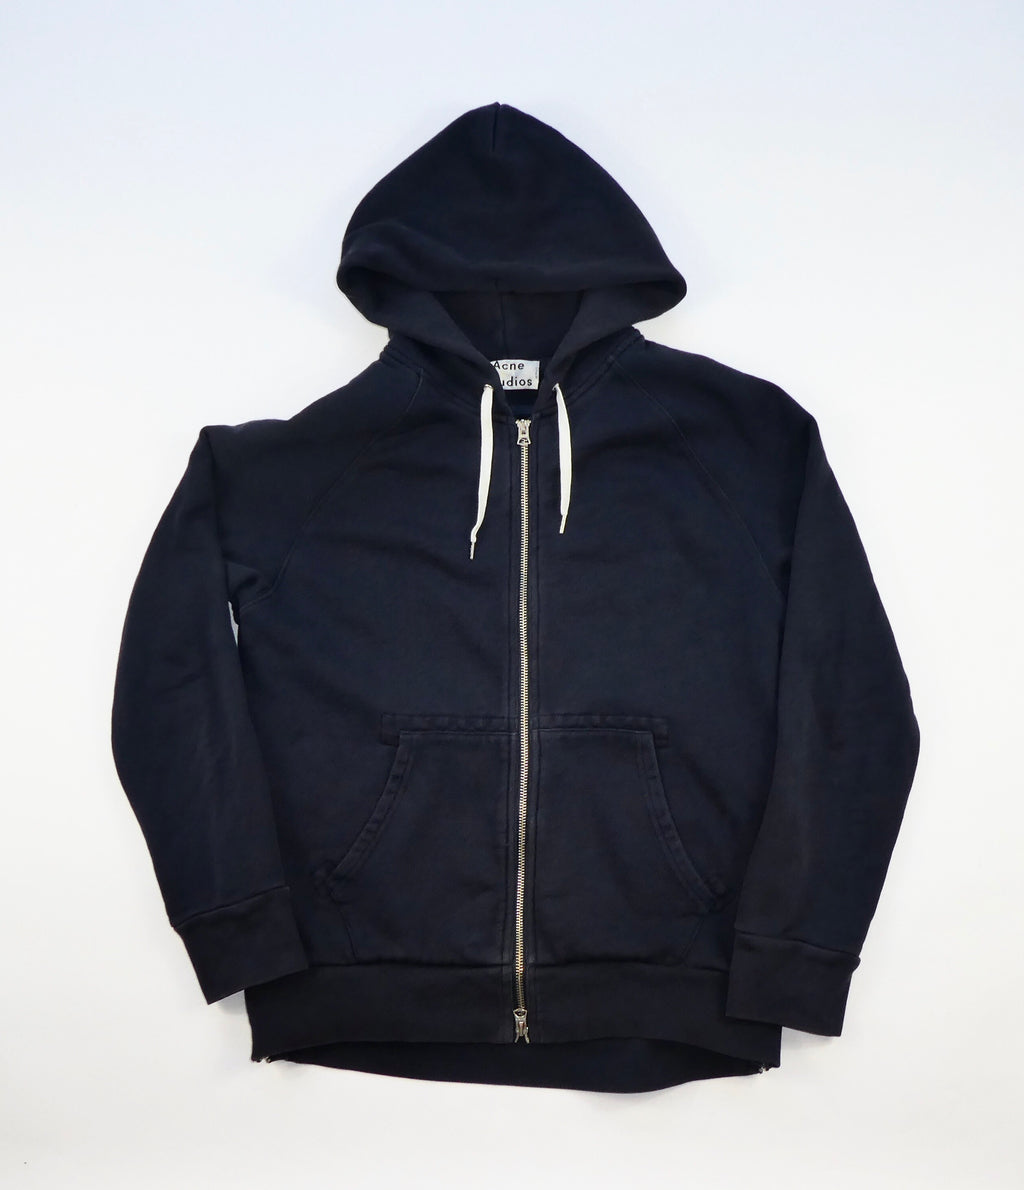 Acne Studios Justin Hoodie With Side Zips